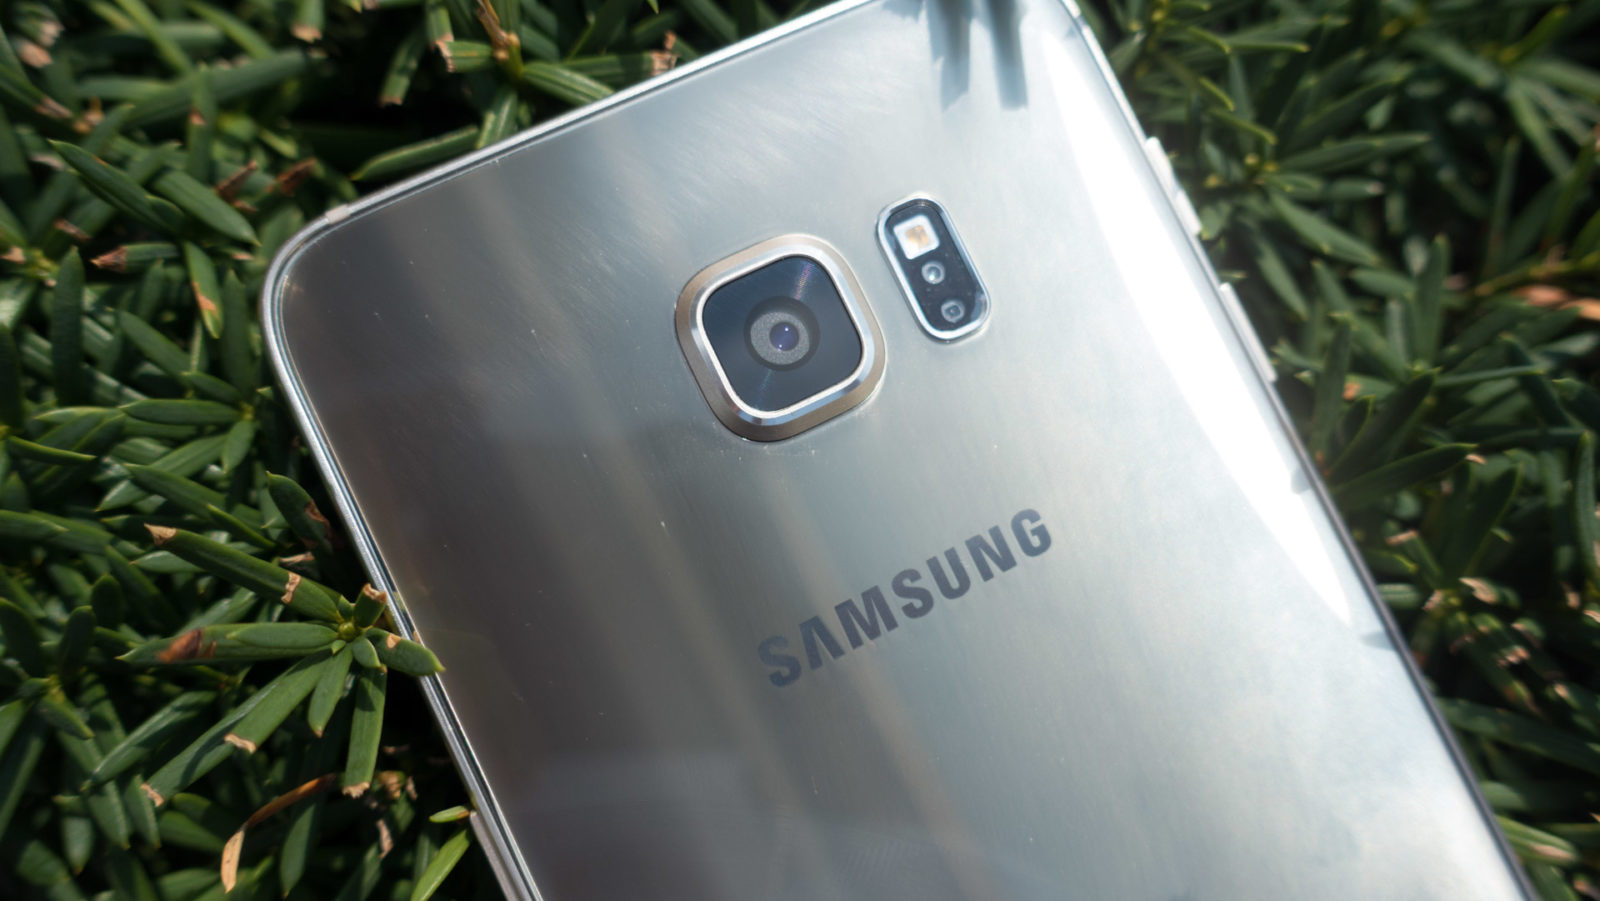 Samsung-Galaxy-S6-Edge-plus-Camera-Tips-Tricks-AH-4